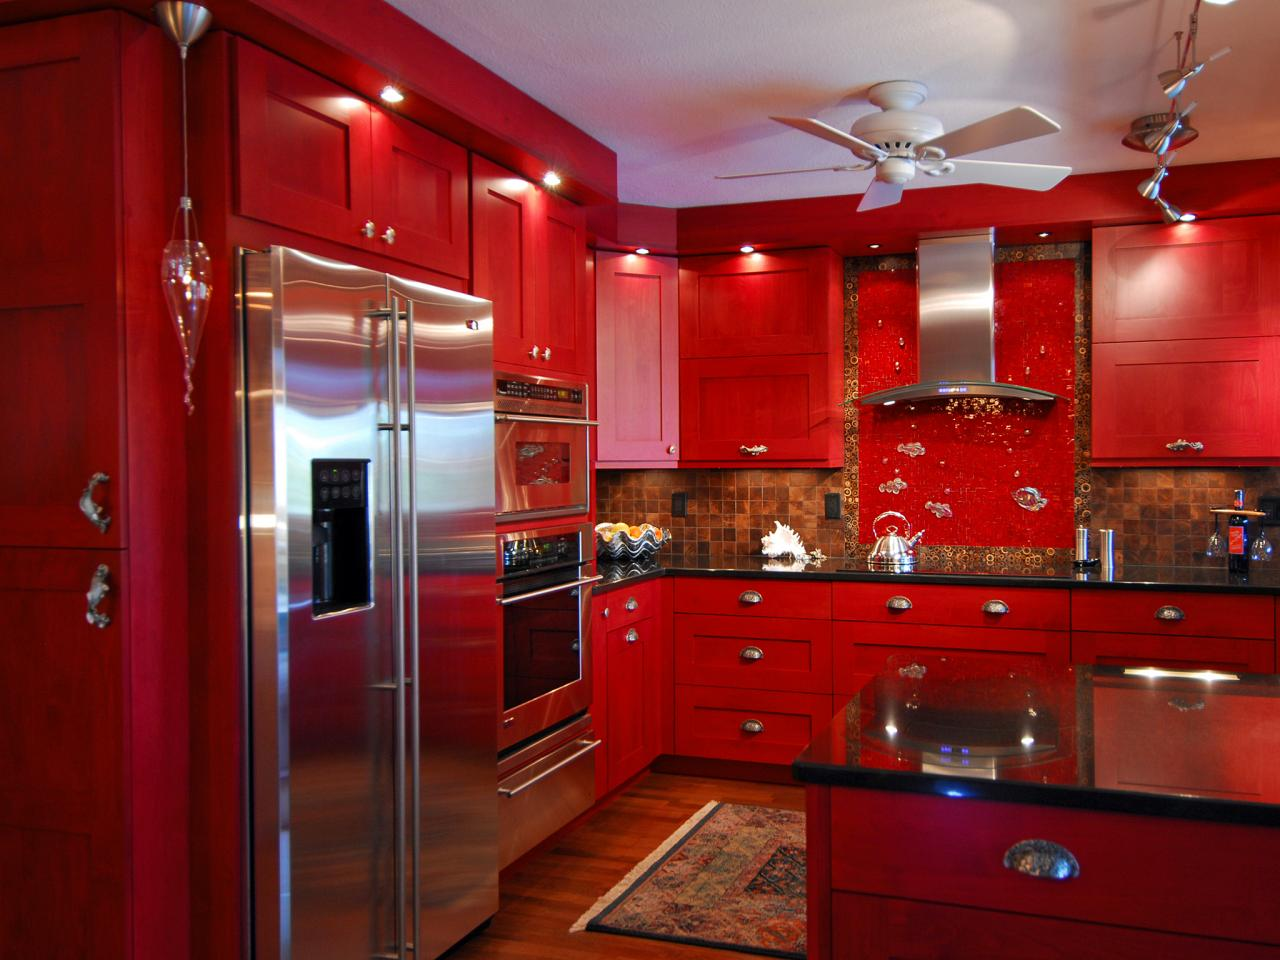 Stunning Room Decoration Idea with Ceiling Van also Good Red Kitchen Cabinets Design